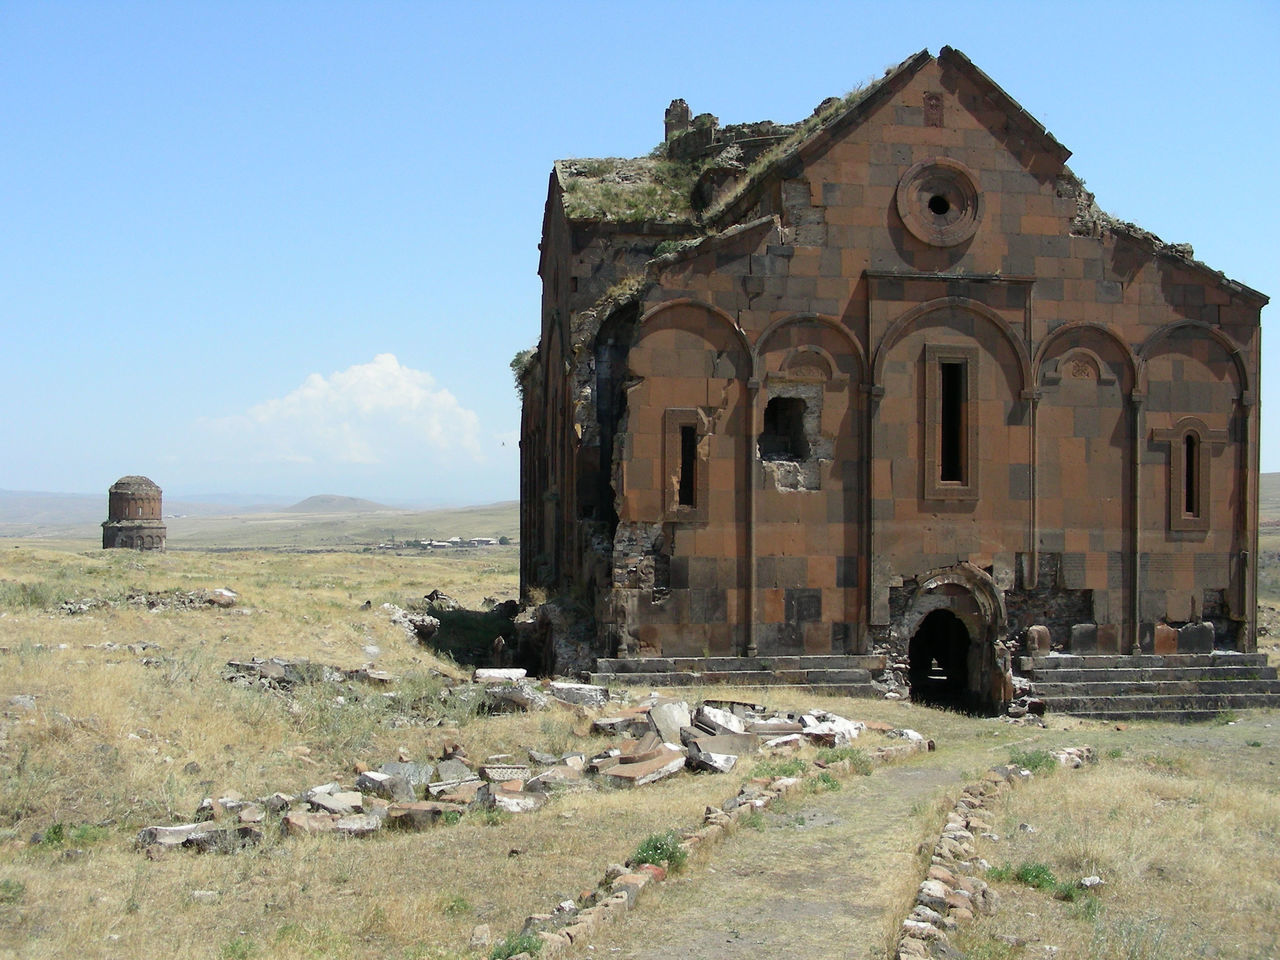 The Cathedral... Aniruins Archeological Site Architecture Armenian BIG Building Exterior Built Structure Cathedral Church Day Heritage History Kars No People Old Ruin Outdoors Sky Thecathedral Tourist Destination Turkey Turkeyphotooftheday